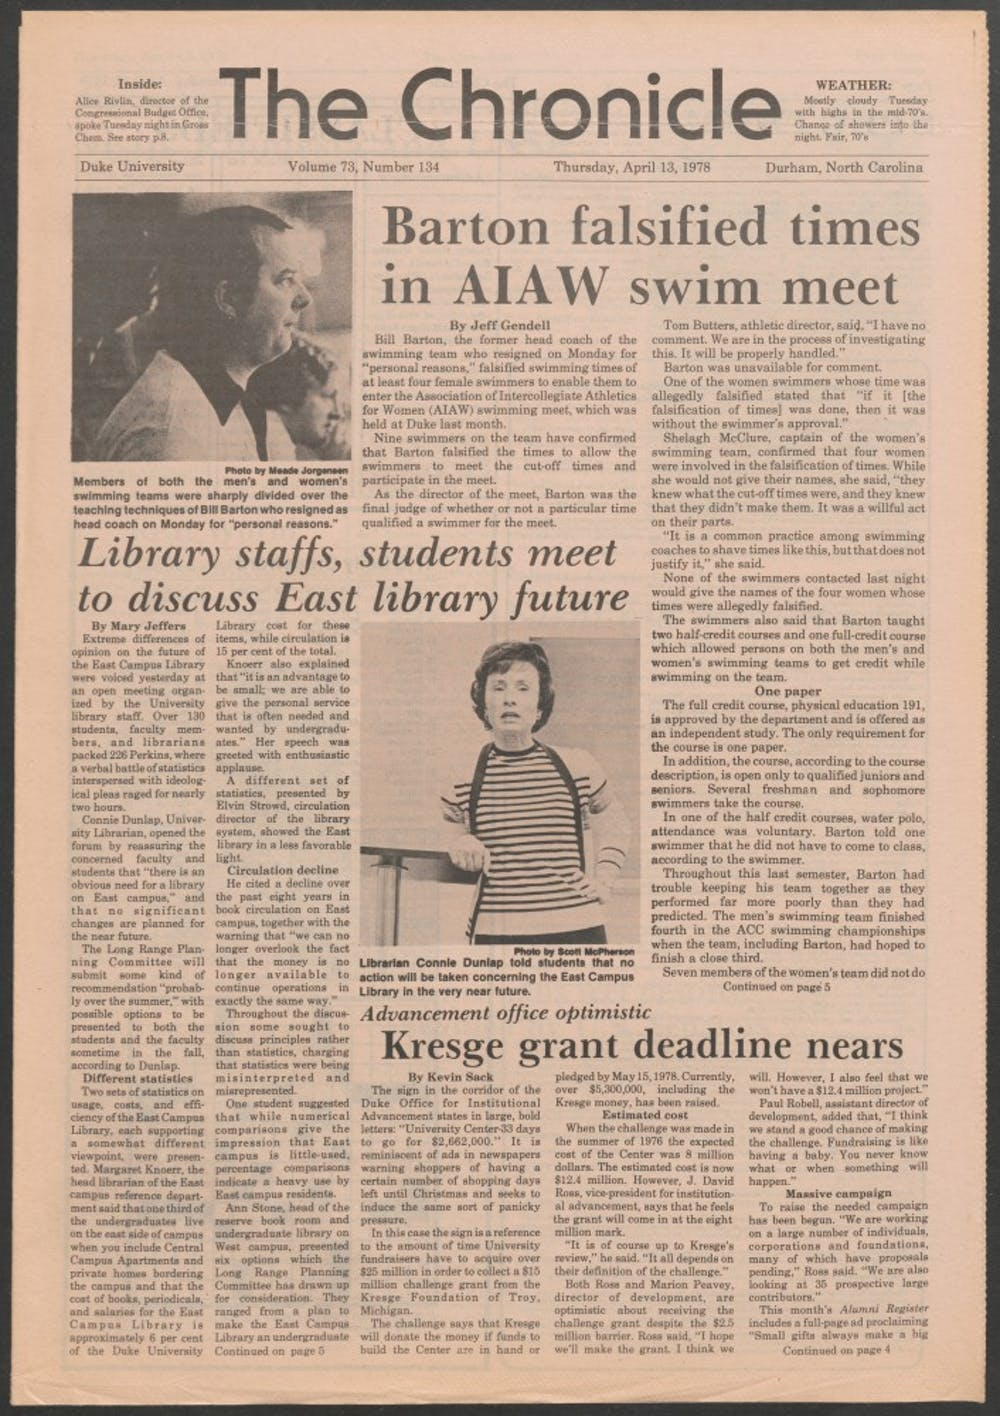 <p>Embattled swimming coach Bill Barton resigned in 1978 after falsifying some of his swimmers' times.</p>